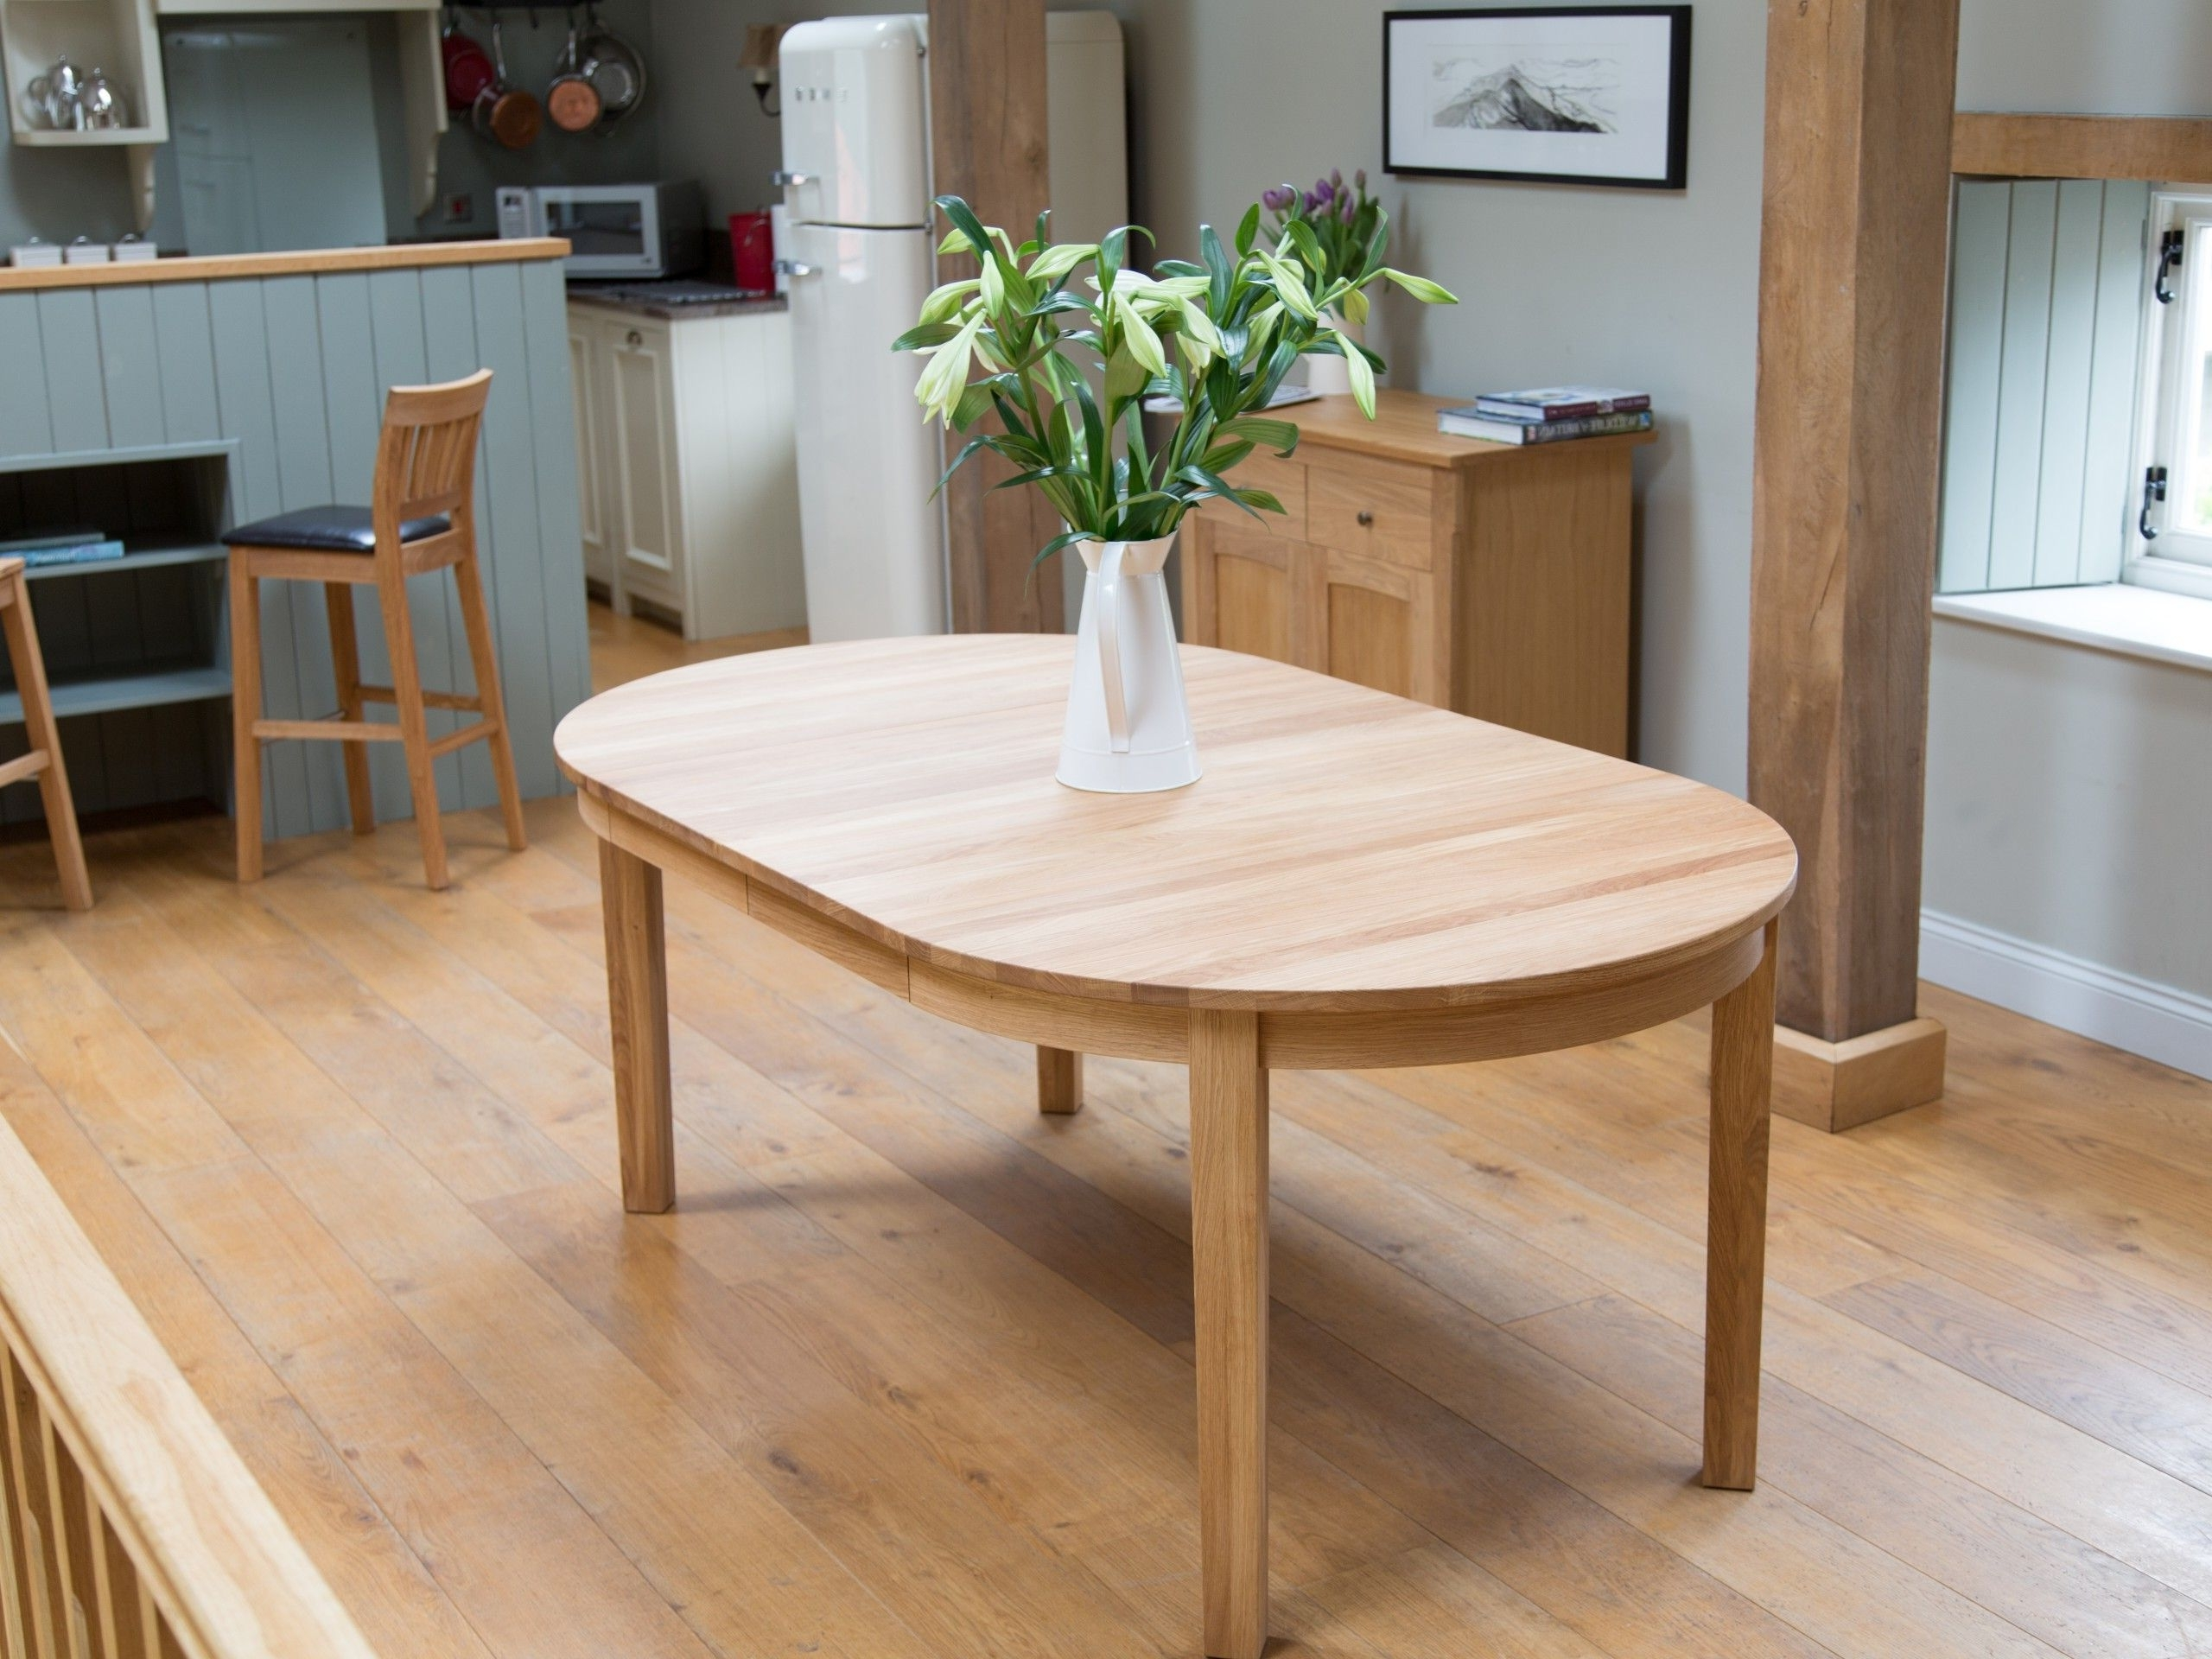 Favorite Round Oak Extendable Dining Tables And Chairs Intended For Round Extendable Dining Room Tables (View 5 of 25)